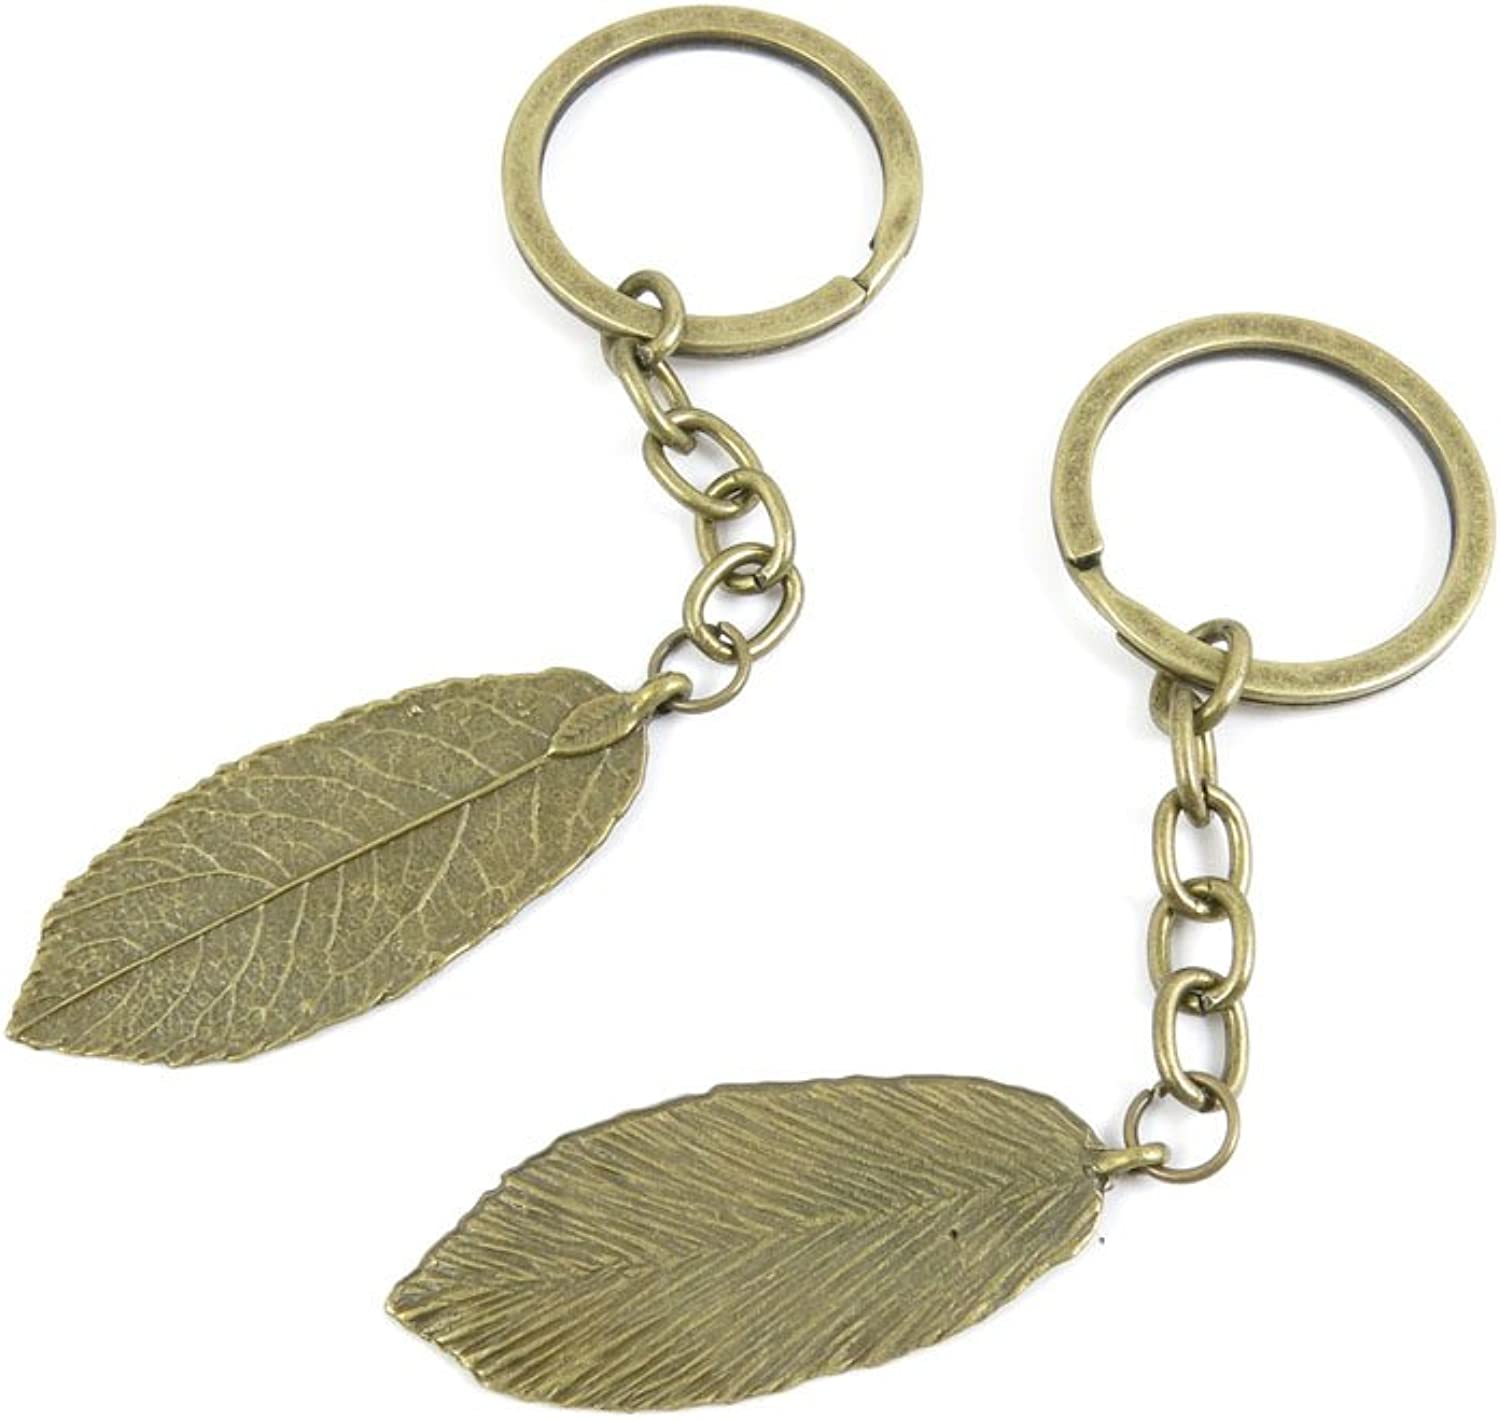 170 Pieces Fashion Jewelry Keyring Keychain Door Car Key Tag Ring Chain Supplier Supply Wholesale Bulk Lots V6AP2 Leaf Leaves